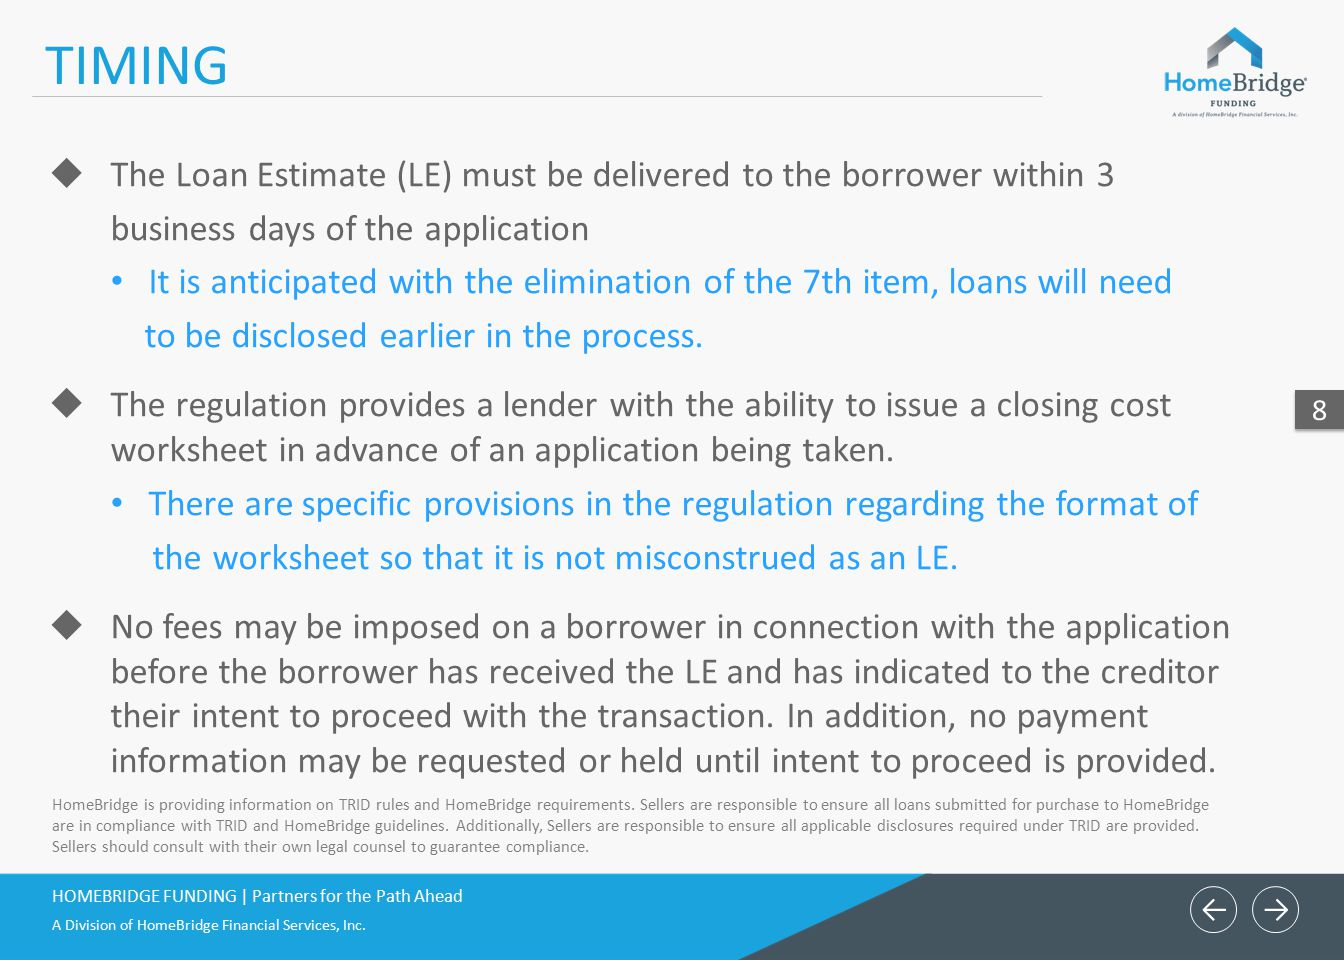 ← TIMING. The Loan Estimate (LE) must be delivered to the borrower within 3. business days of the application.